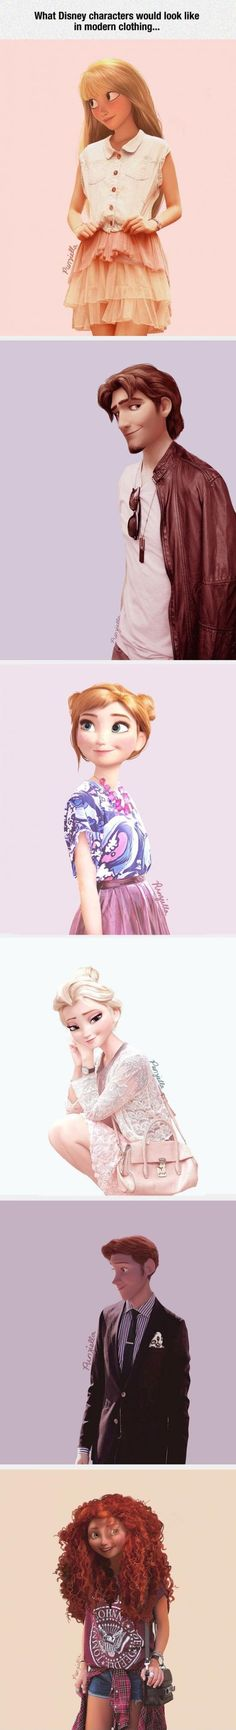 If Disney characters wore modern clothing - Cute, but Rapunzel just doesn't look right with bangs. Also if Rapunzel had bangs, wouldn't they have turned brown? Disney Pixar, Walt Disney, Disney Films, Cute Disney, Disney And Dreamworks, Disney Magic, Modern Disney Characters, Frozen Characters, Fictional Characters